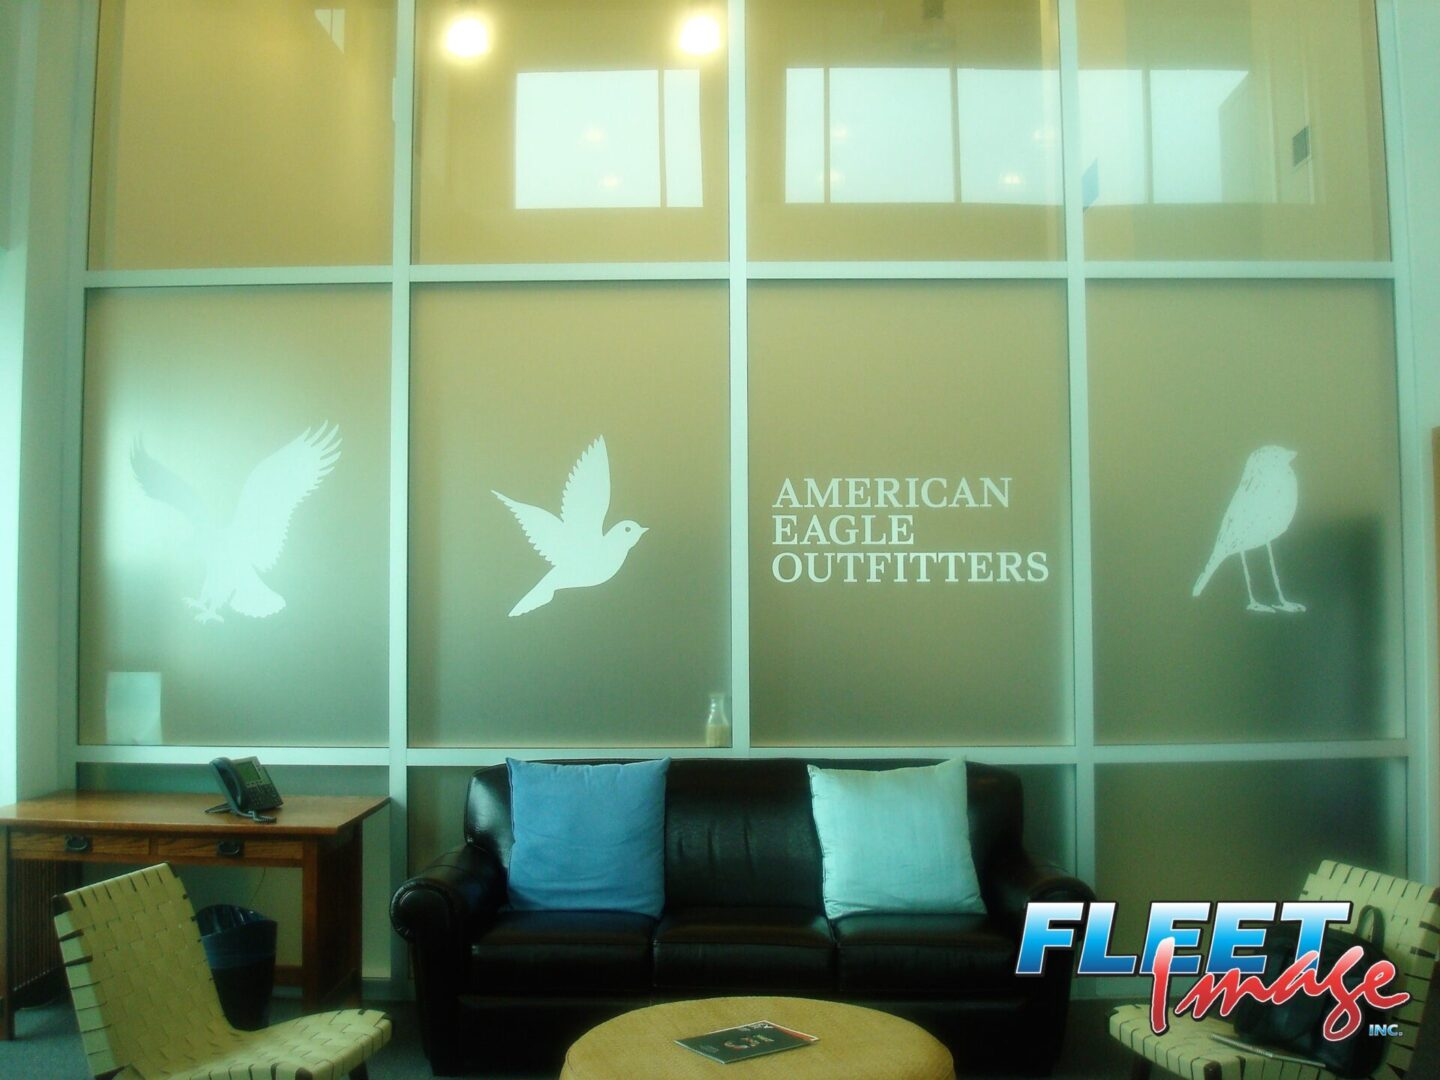 Perforated windows with American Eagle Outfitters logo